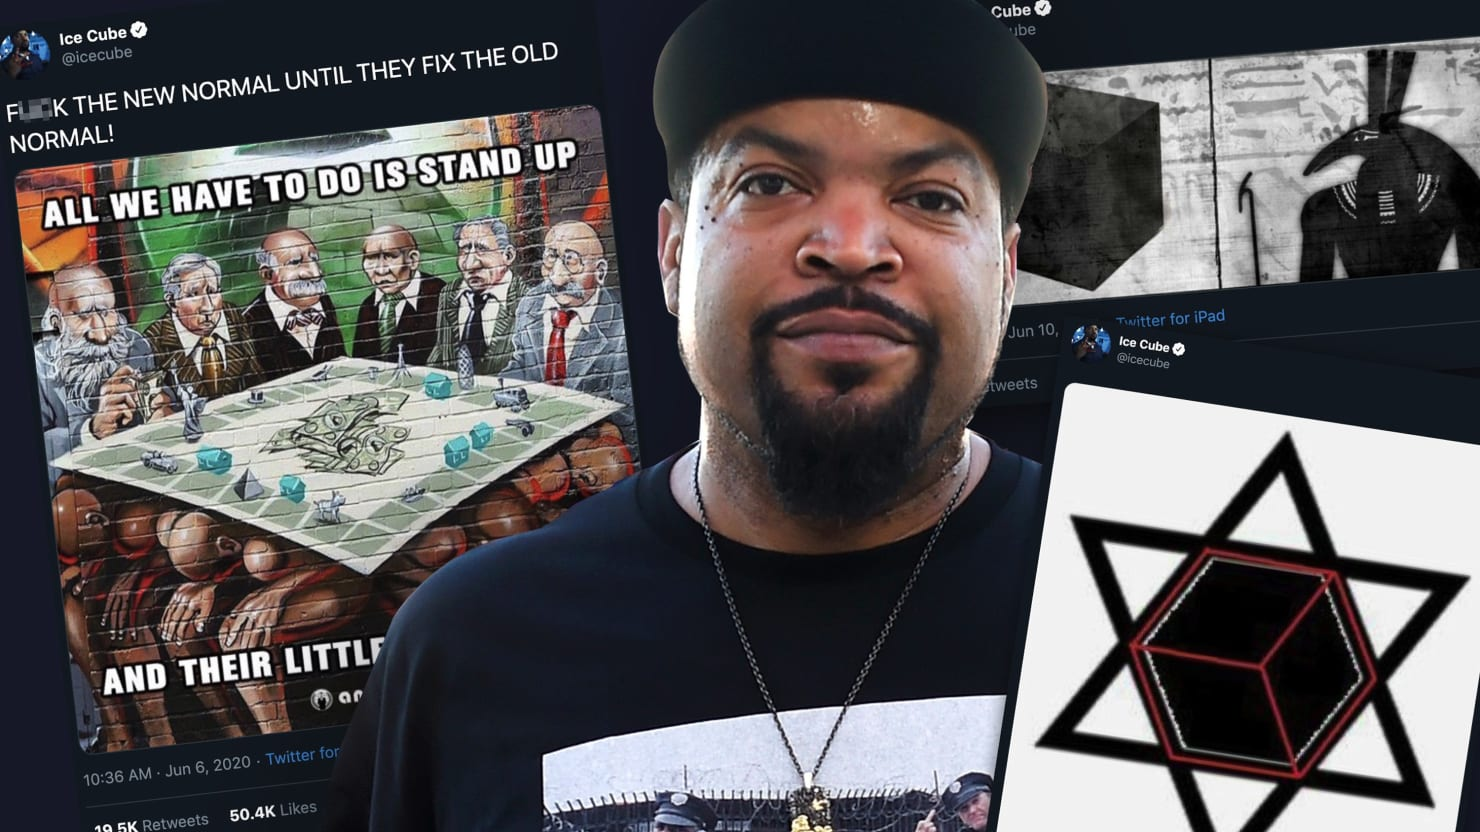 What The Hell Is Going On With Ice Cube?